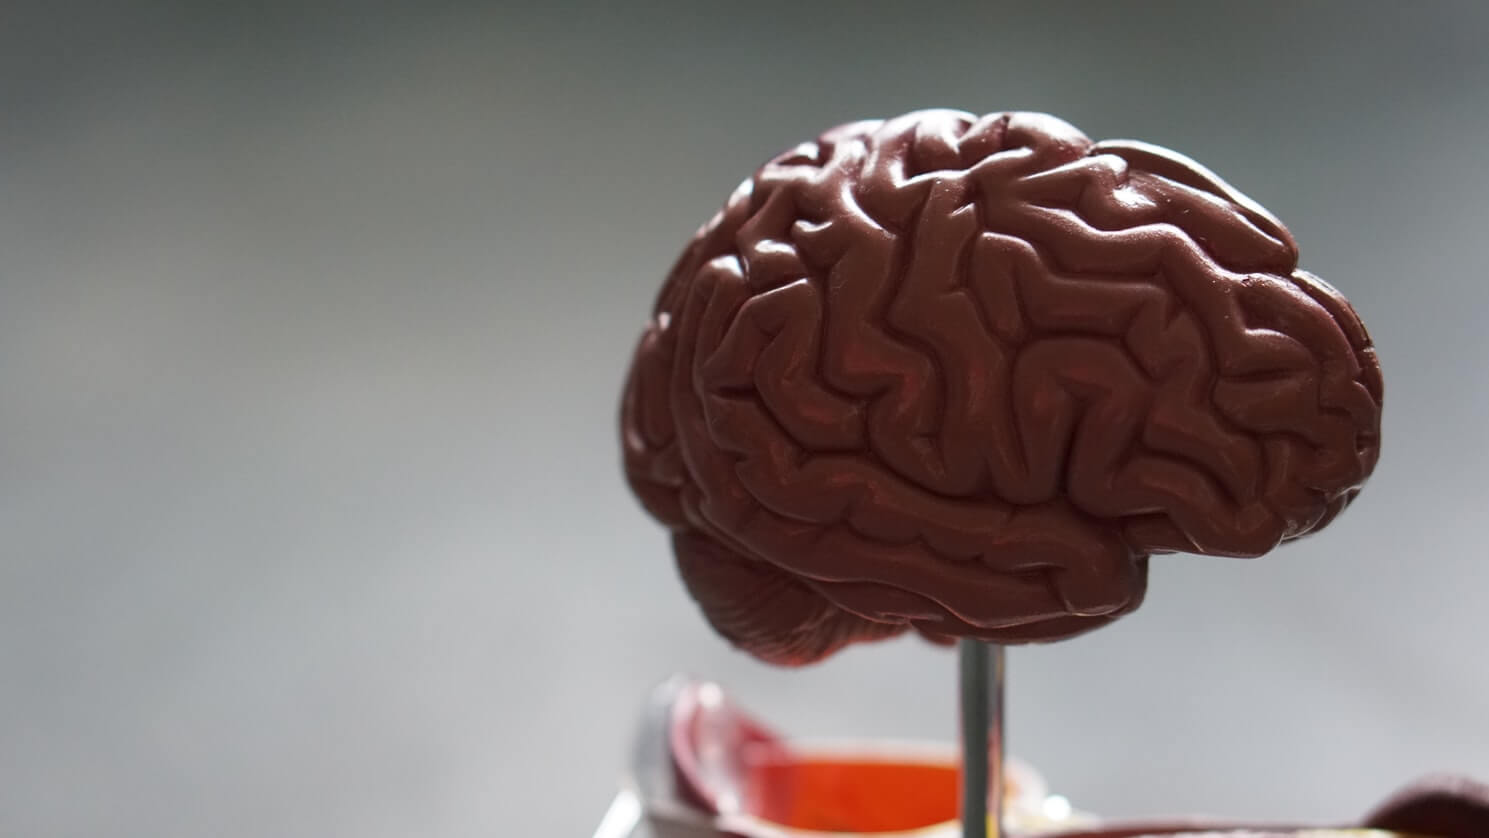 A model of the brain. The brain is affected when an individual has dementia